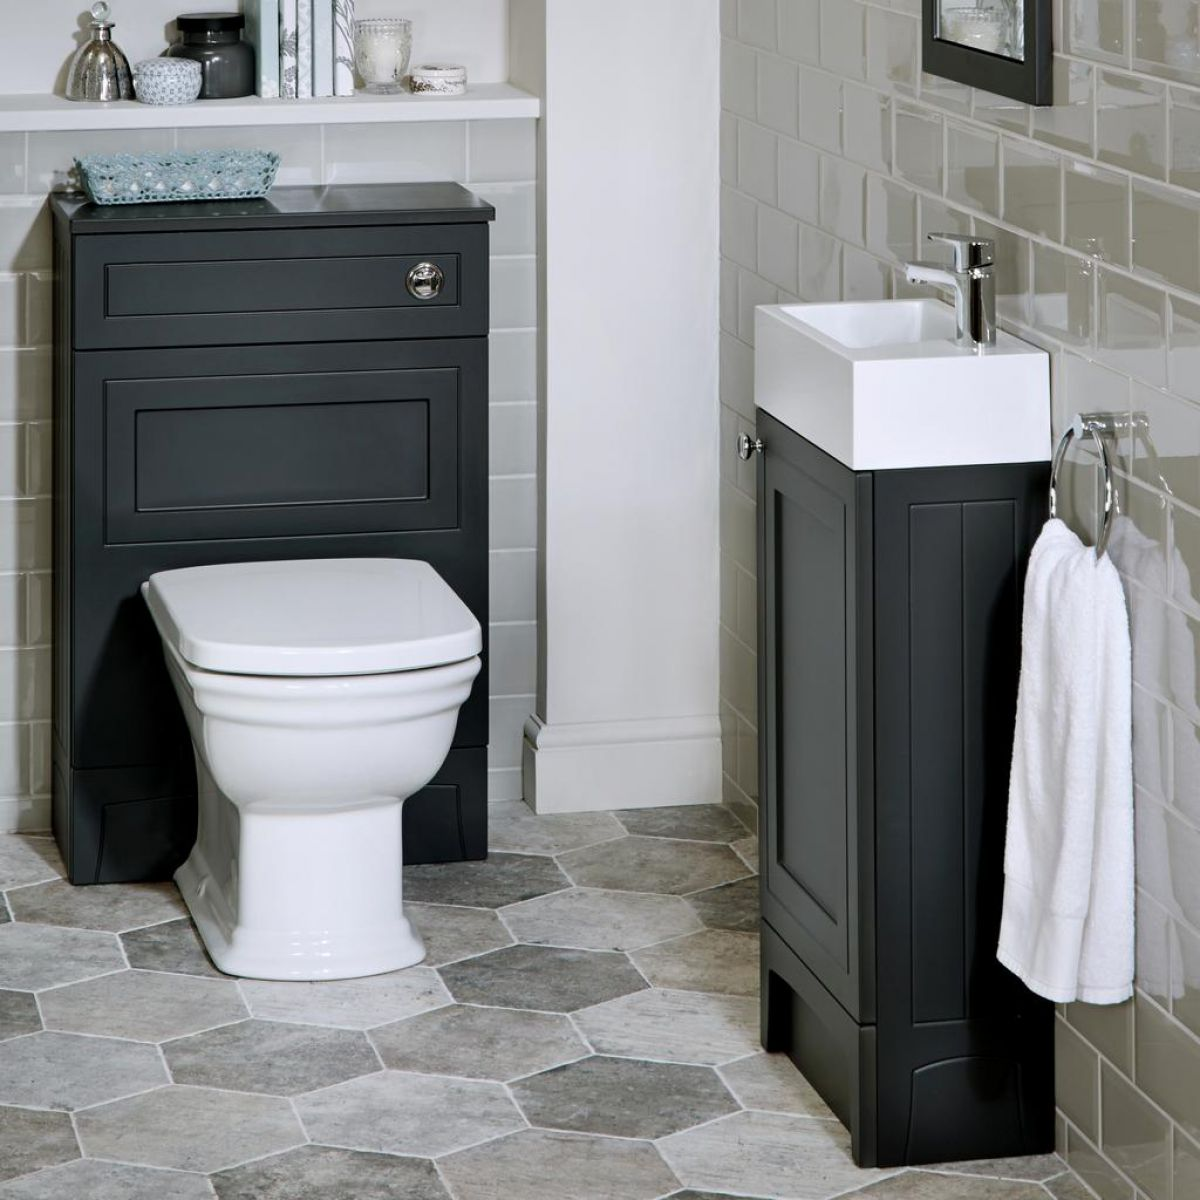 noble classic cloakroom vanity unit uk bathrooms rh ukbathrooms com Bathroom Vanity View Bathroom Vanity with Basin Units